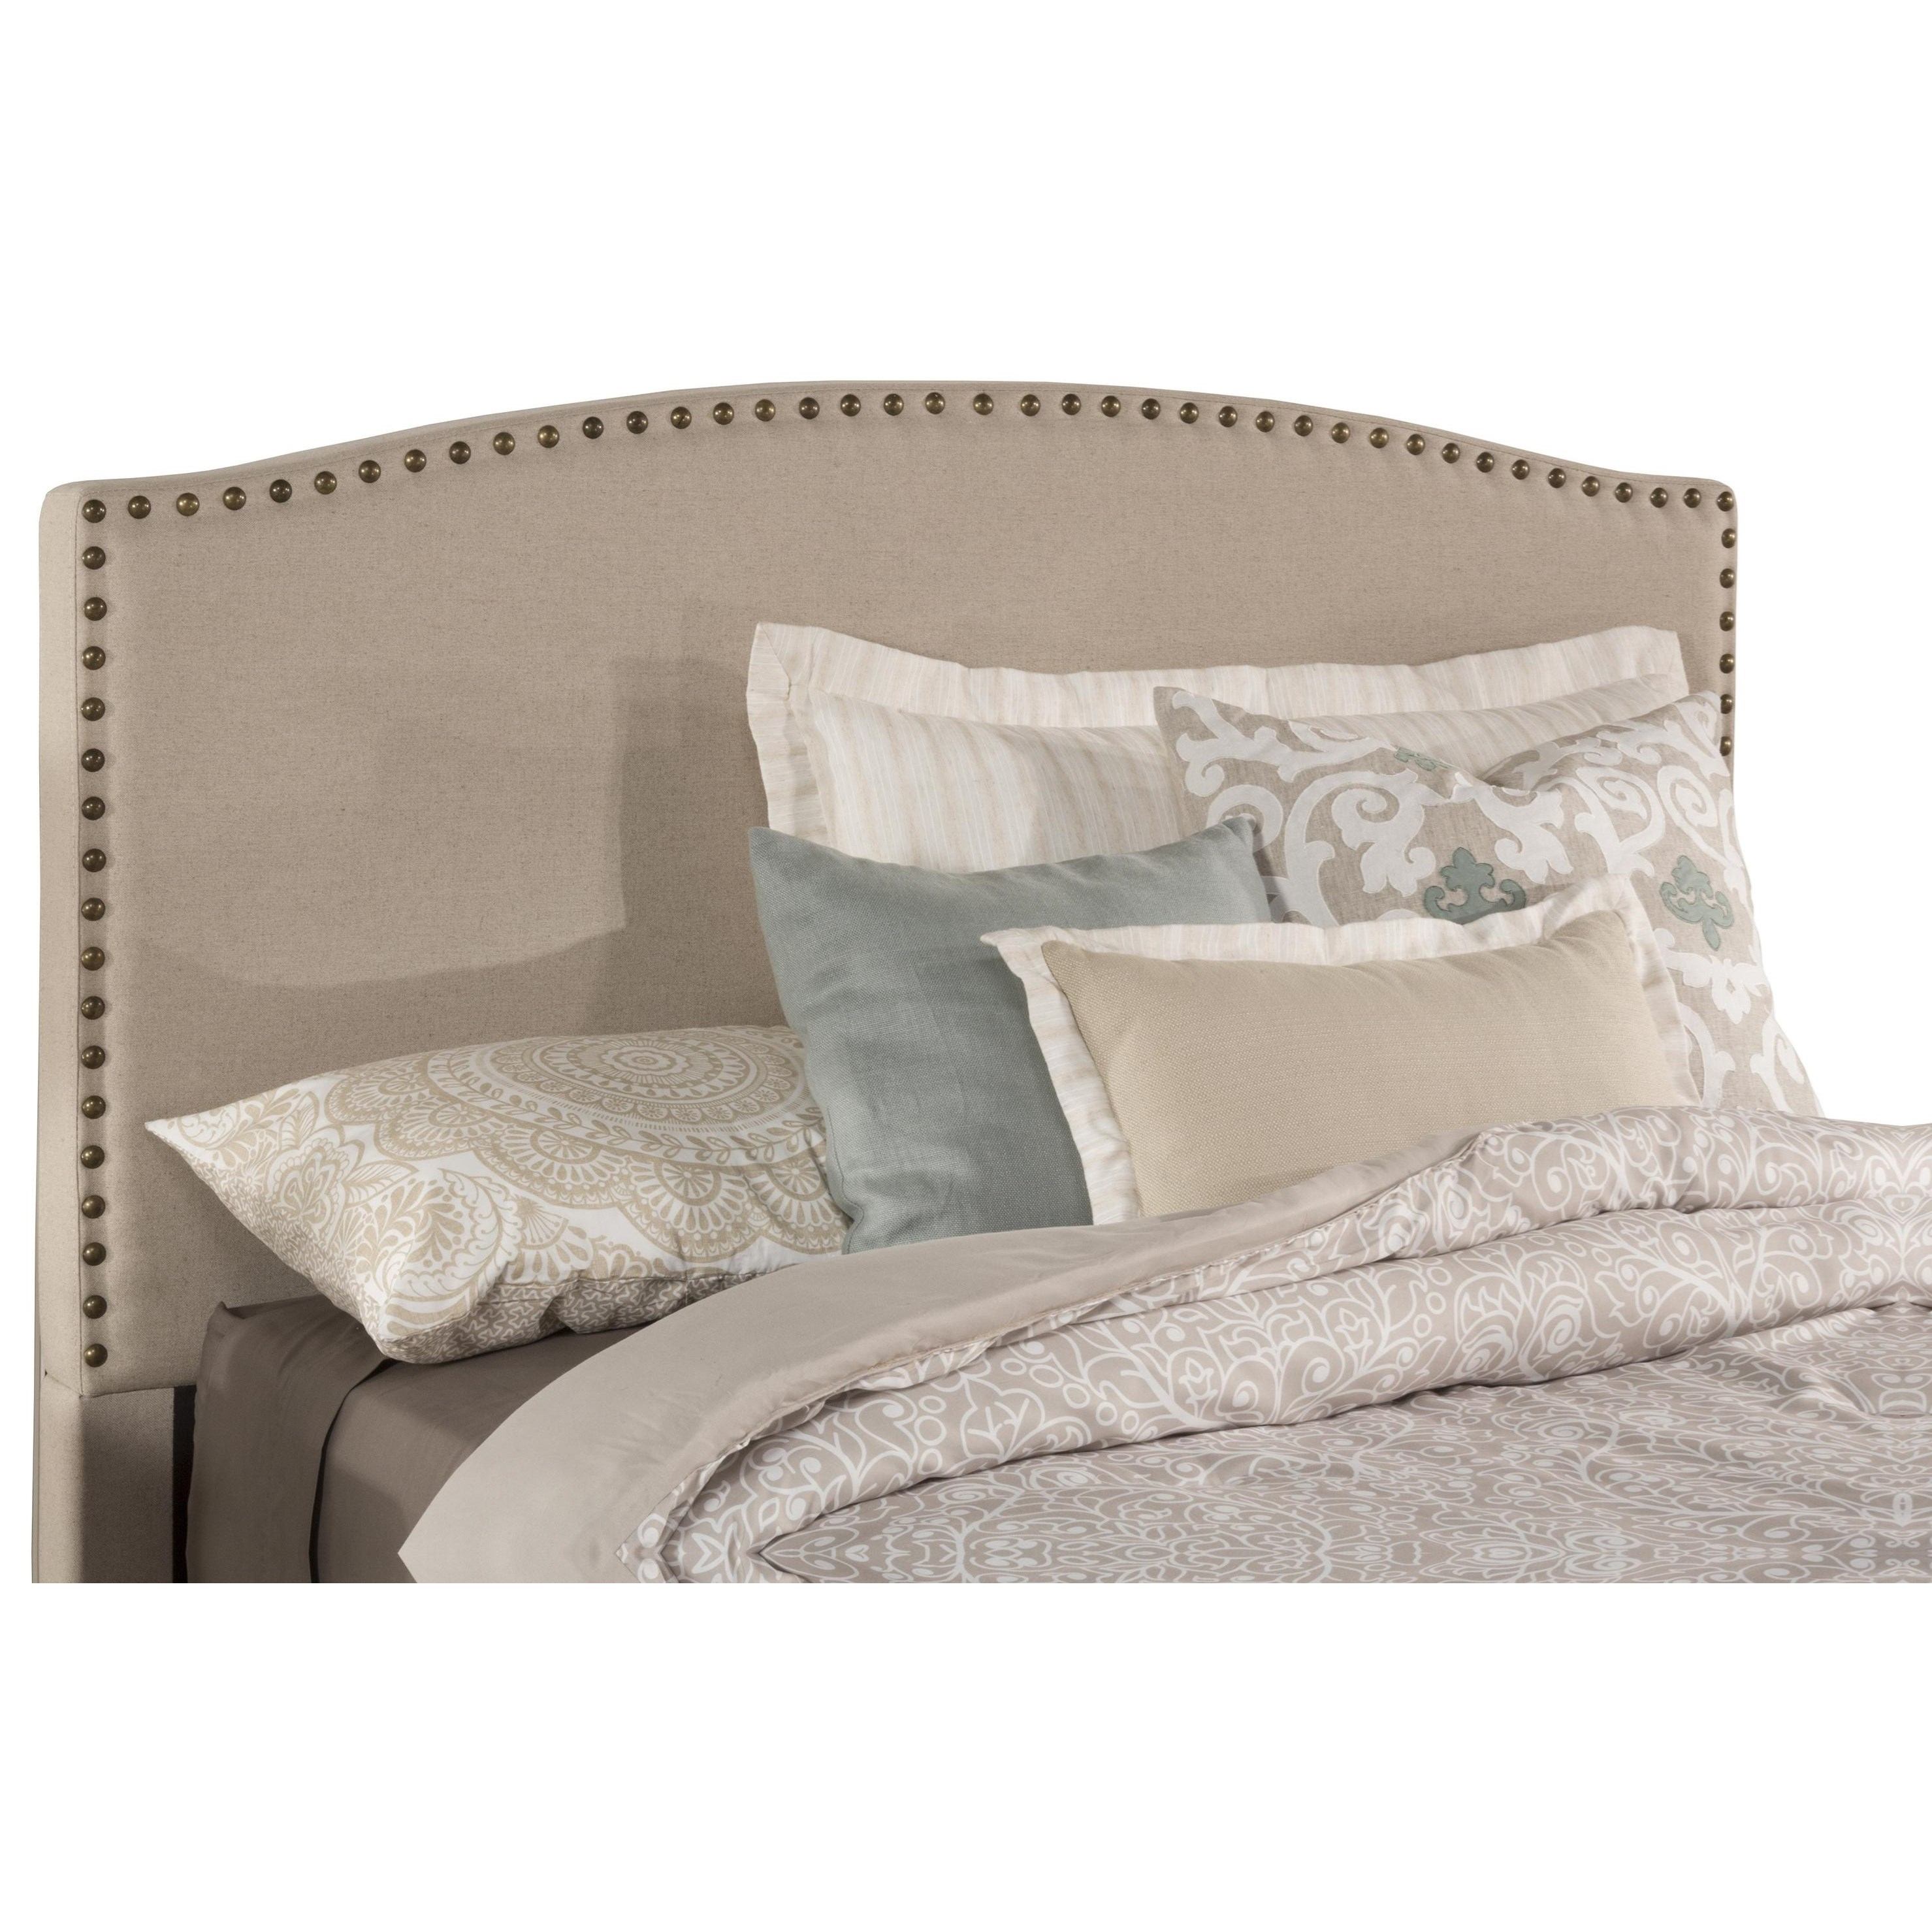 Hillsdale Kerstein Queen Headboard - Item Number: 1932-572